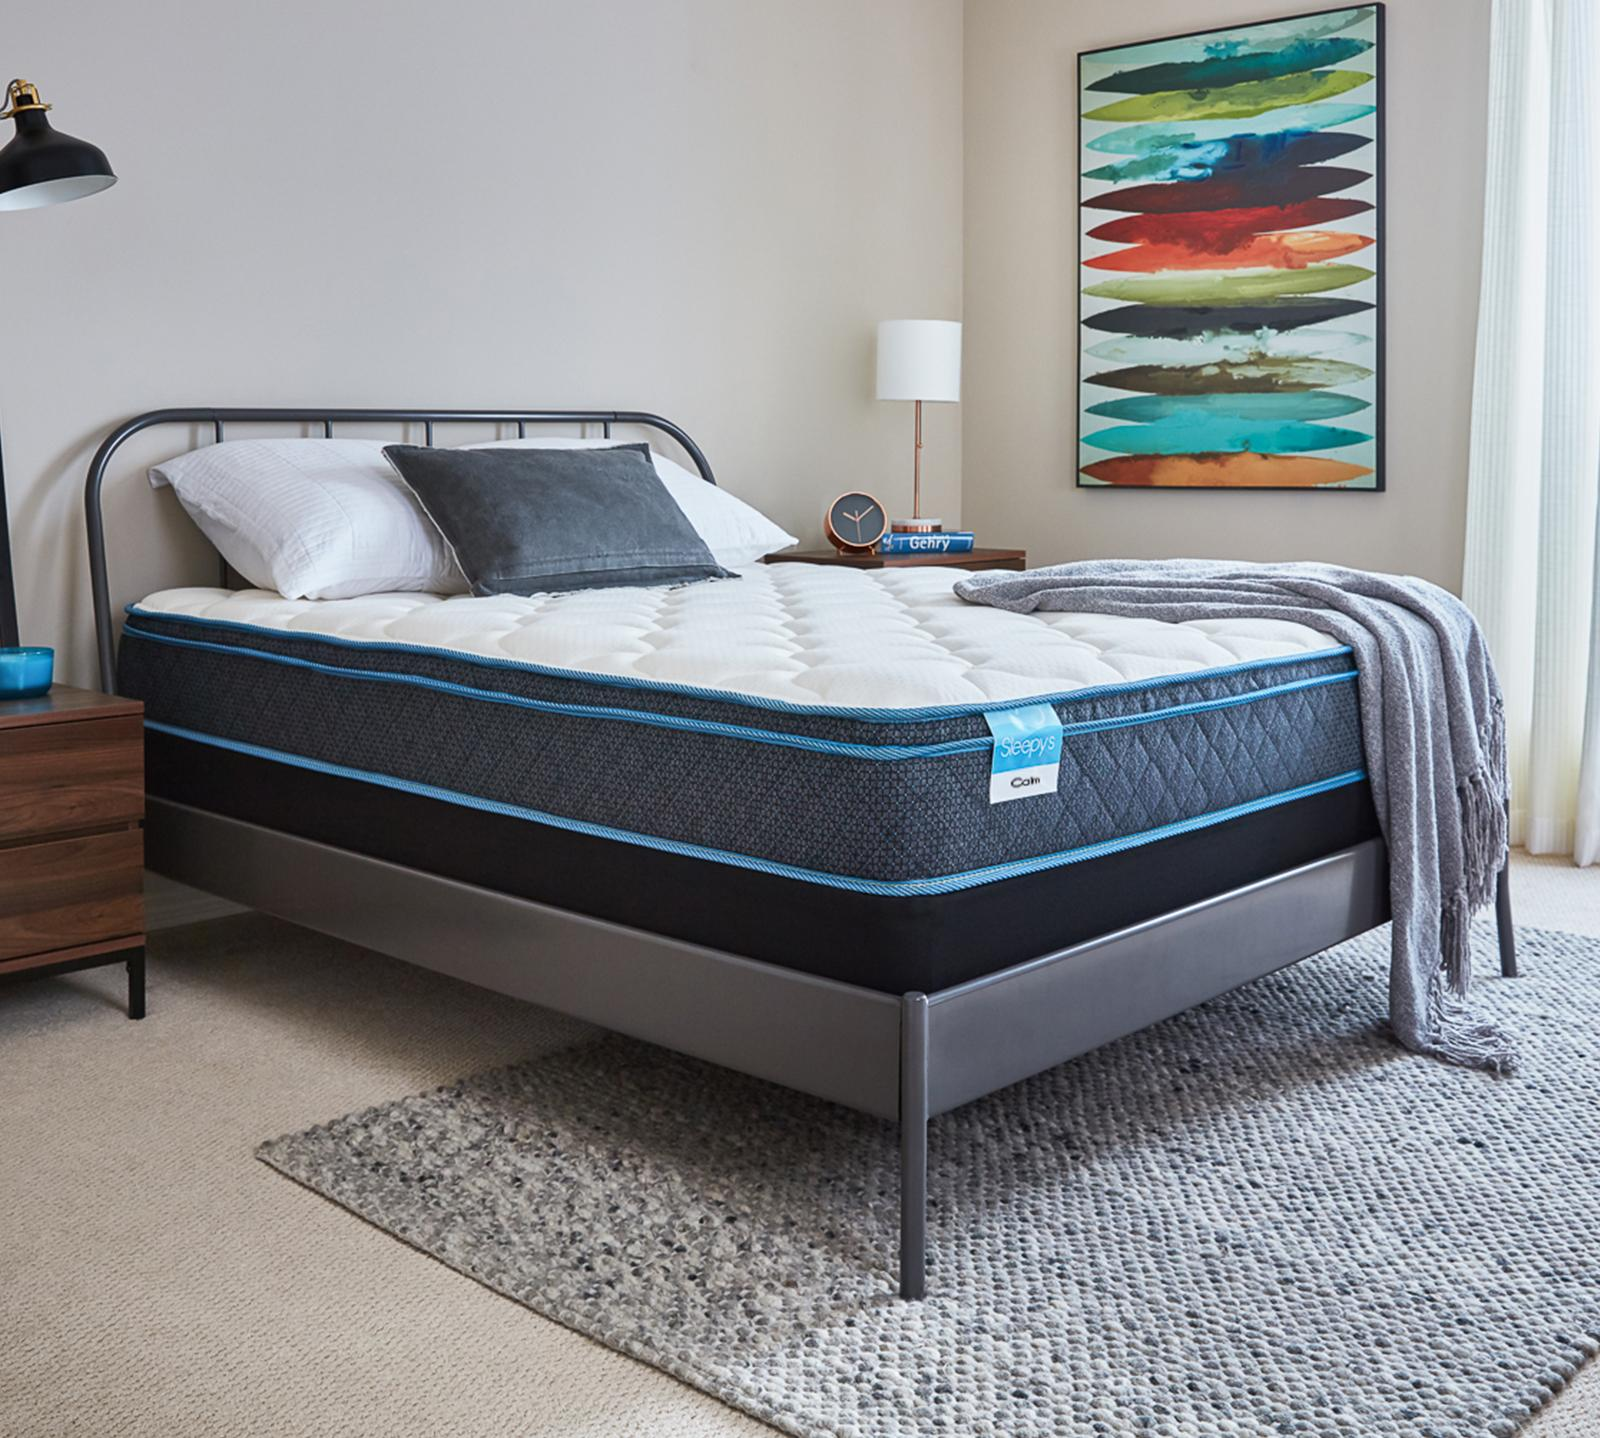 are mattresses and mattress sleepy bedfellows still firm buying sleepys new guide s